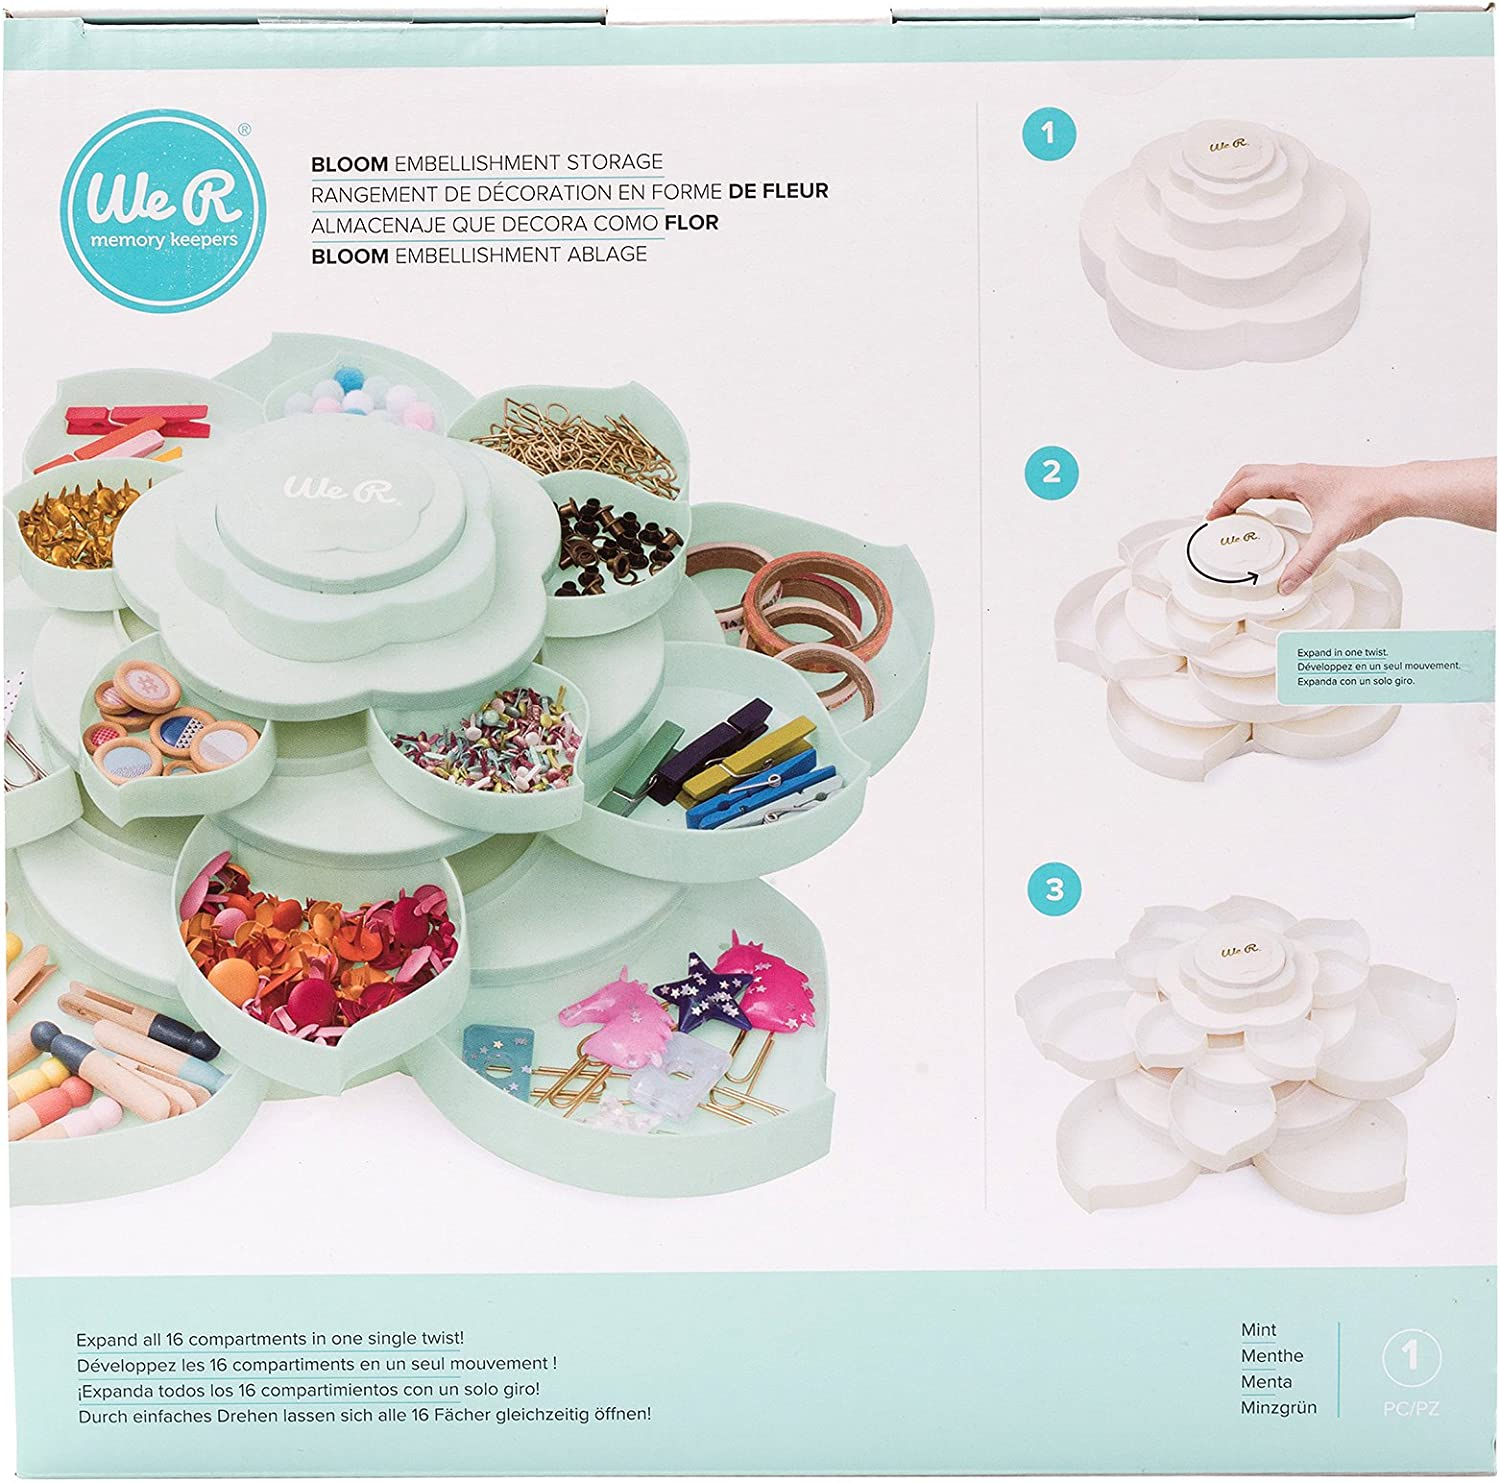 Bloom Embellishment Storage by We R Memory Keepers   Mint